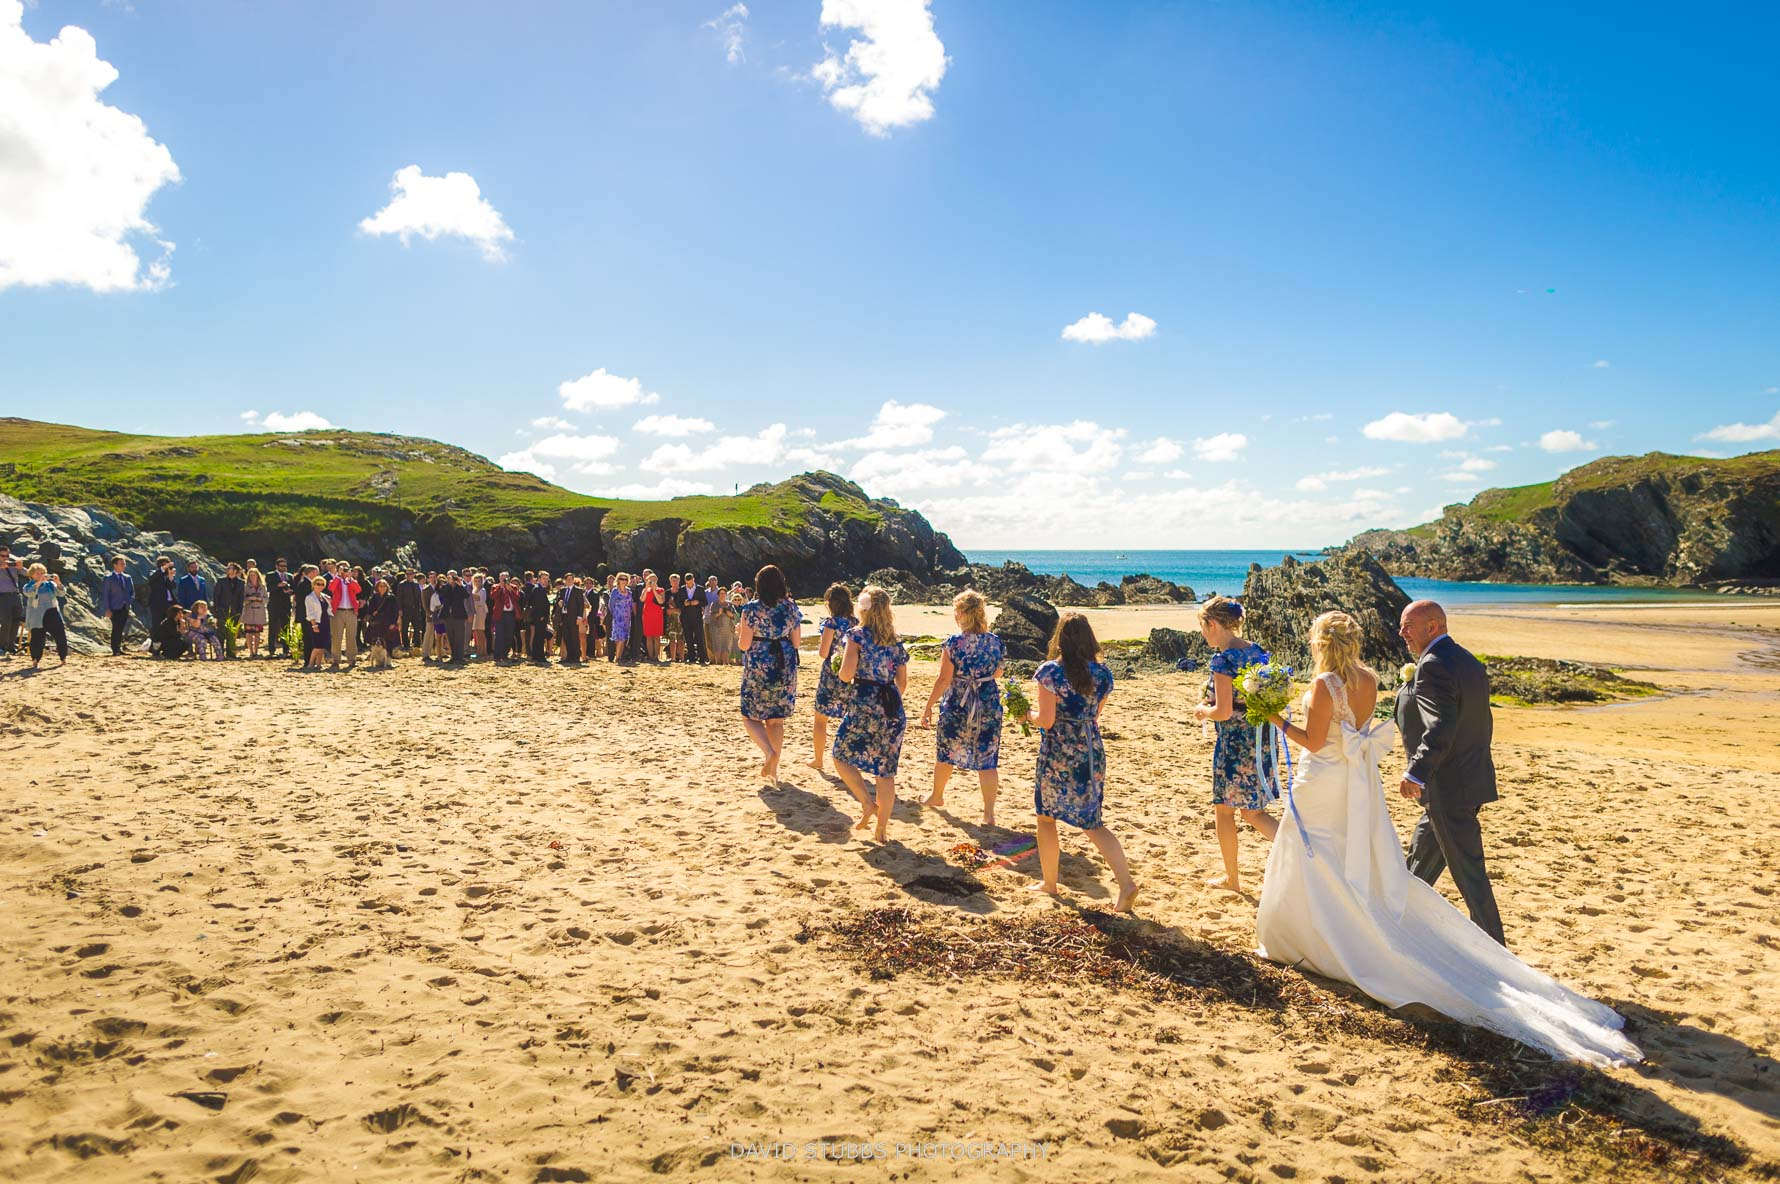 photo from behind as bridal party walking along the beach